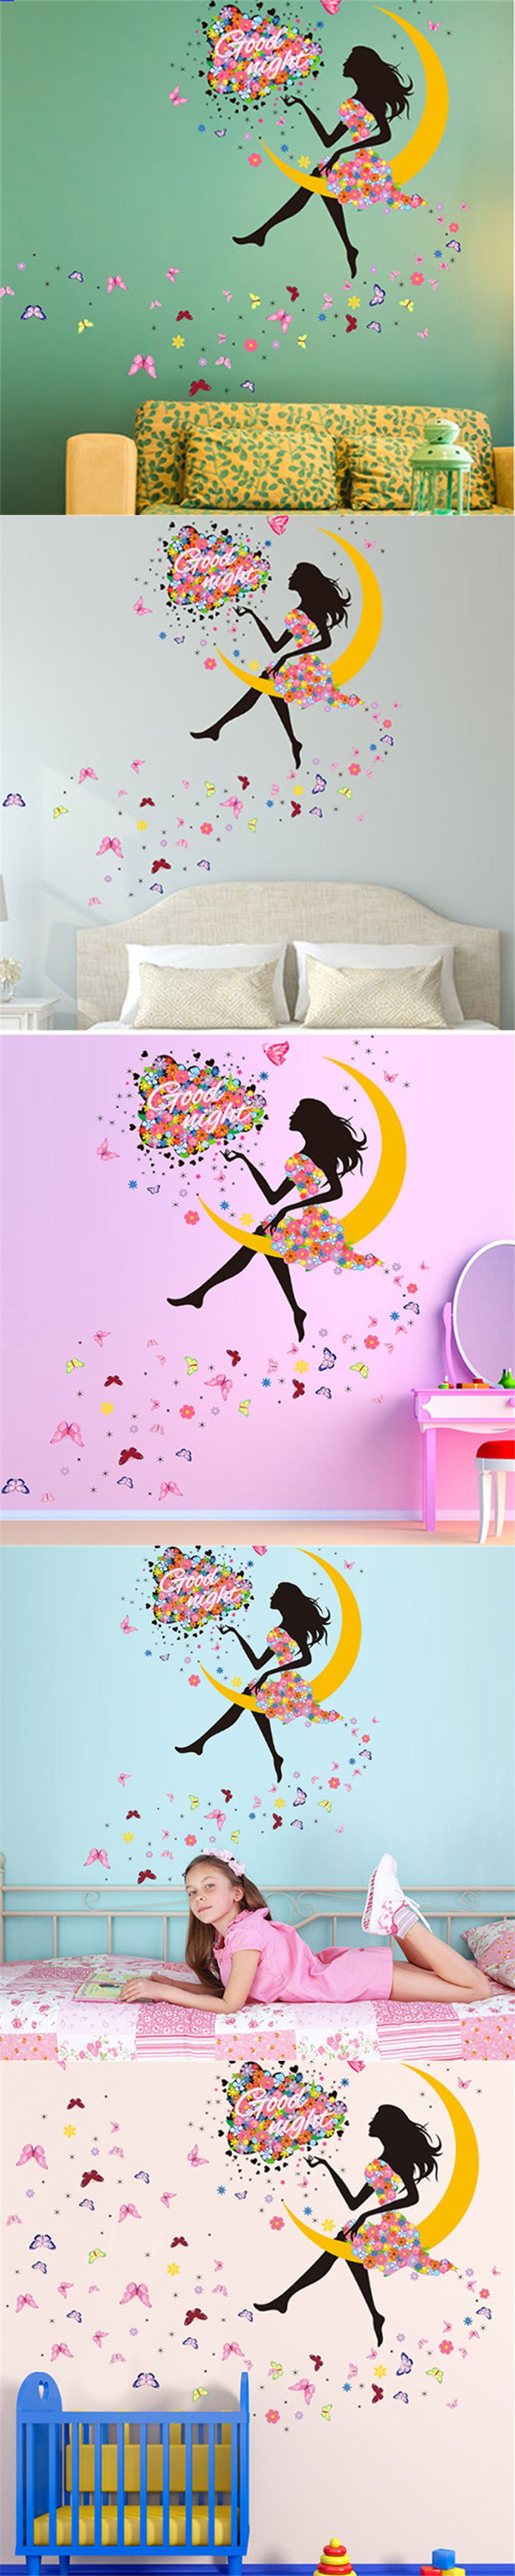 Princess Wall Decorations Bedrooms Princess Butterfly Moon Girls Art Decal Wall Stickers For Home